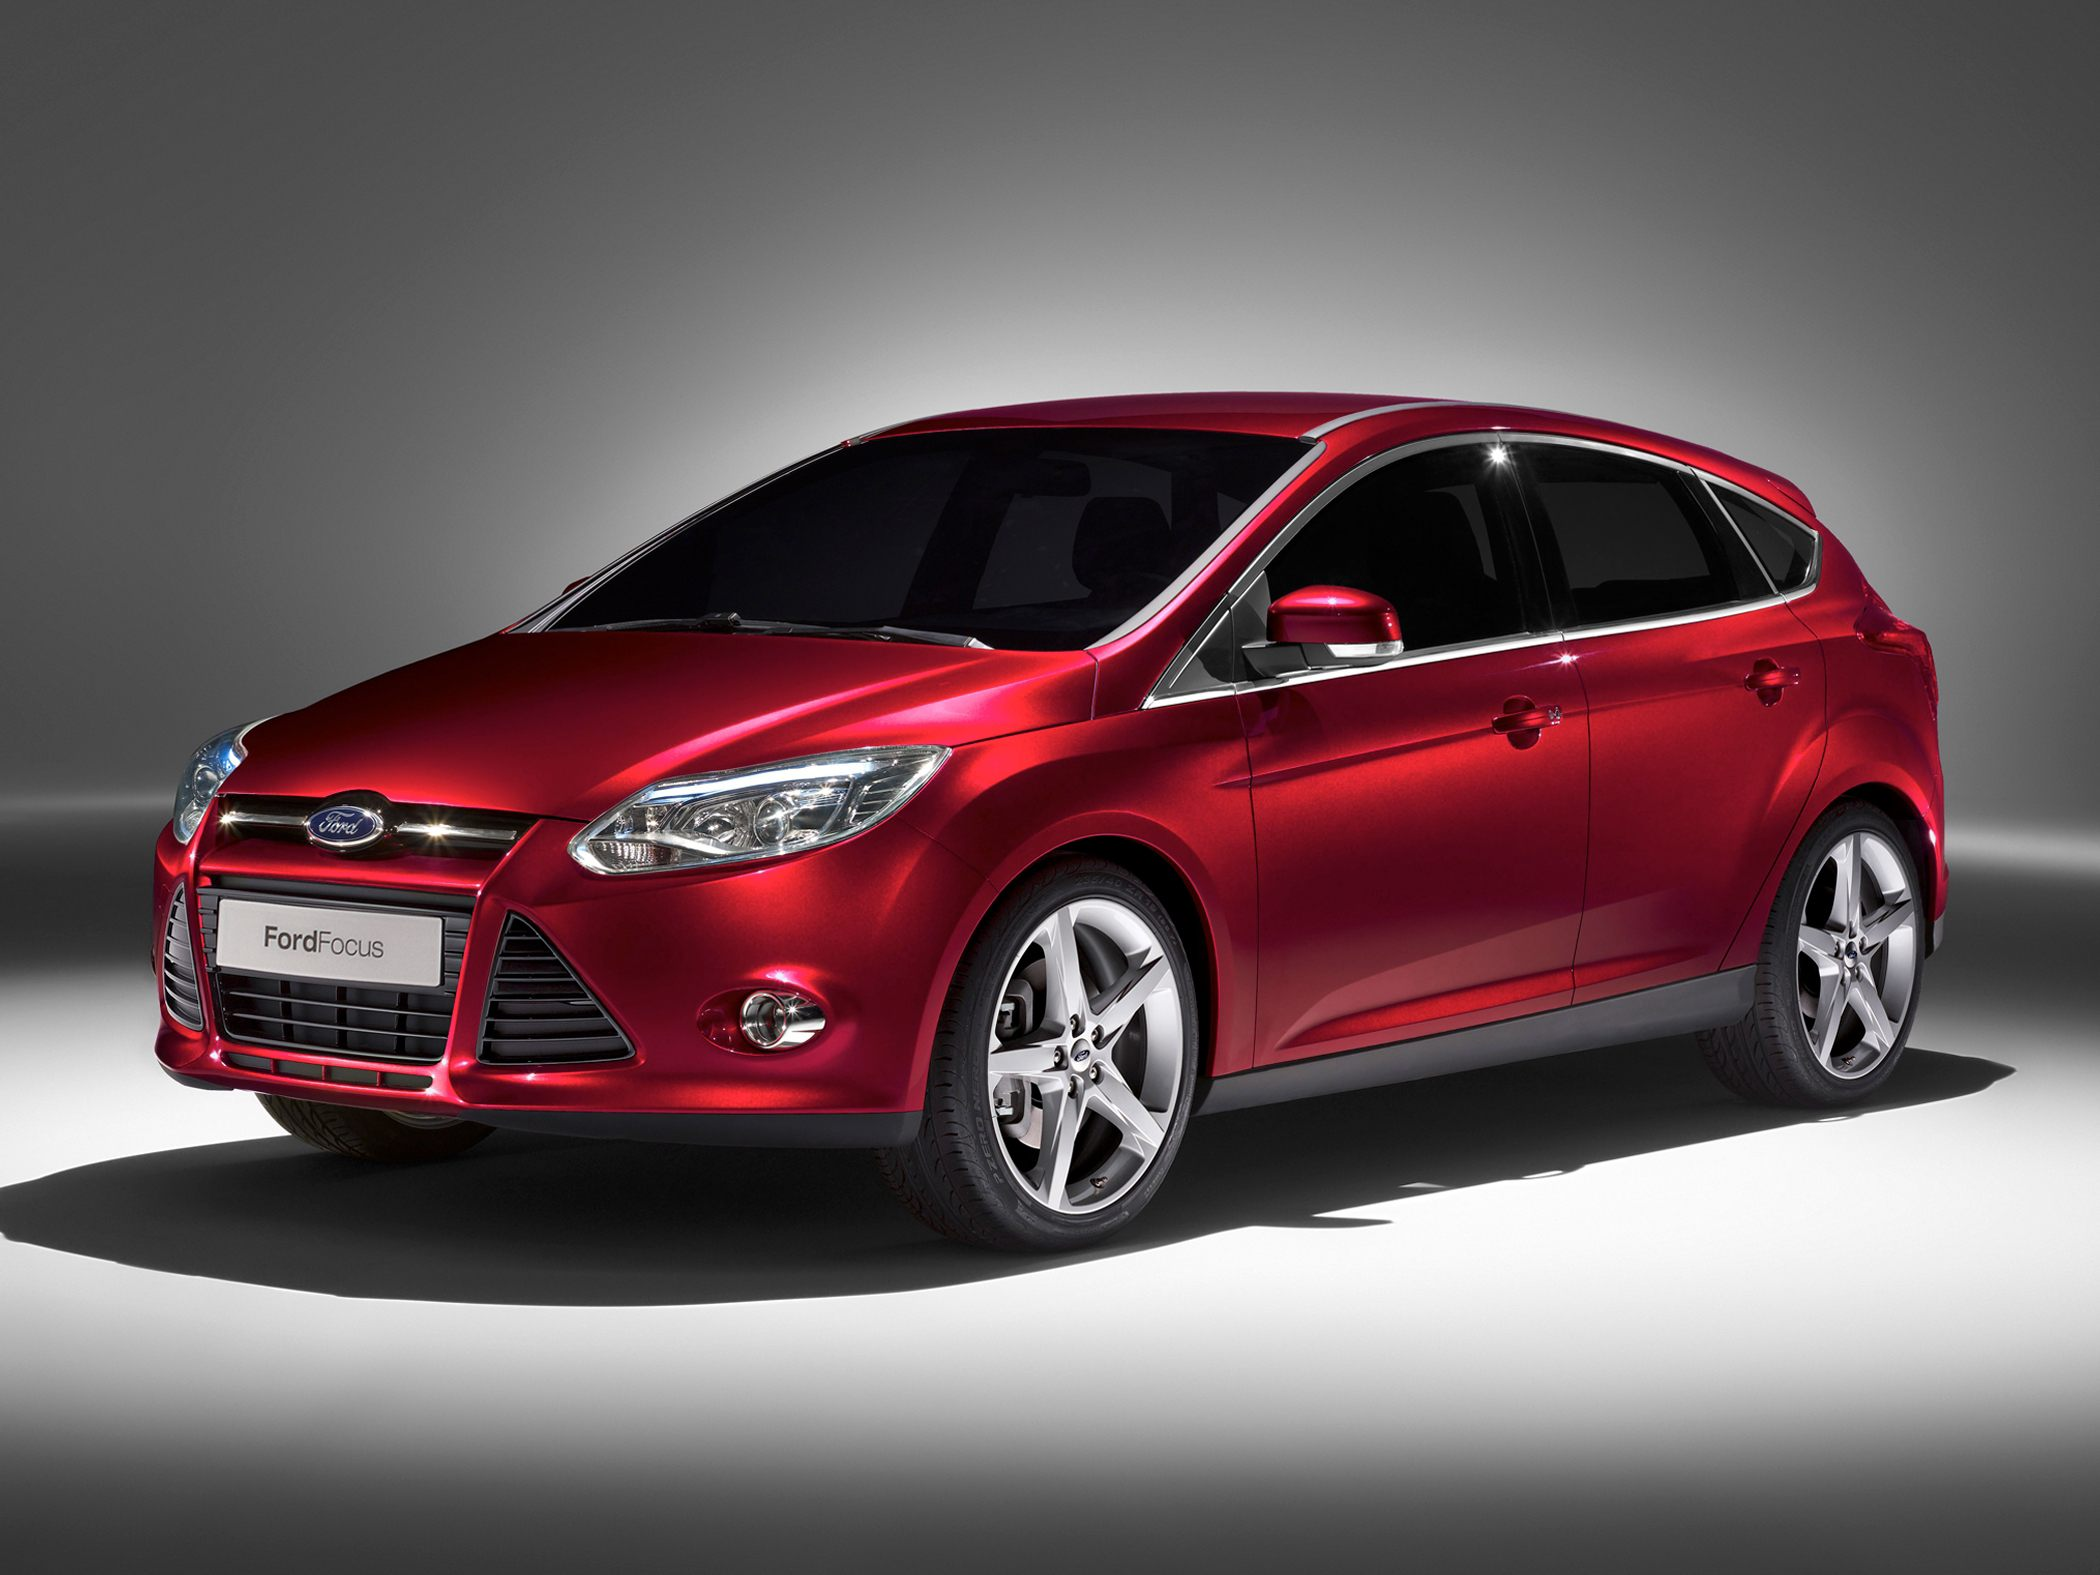 ford focus ii 2013 images